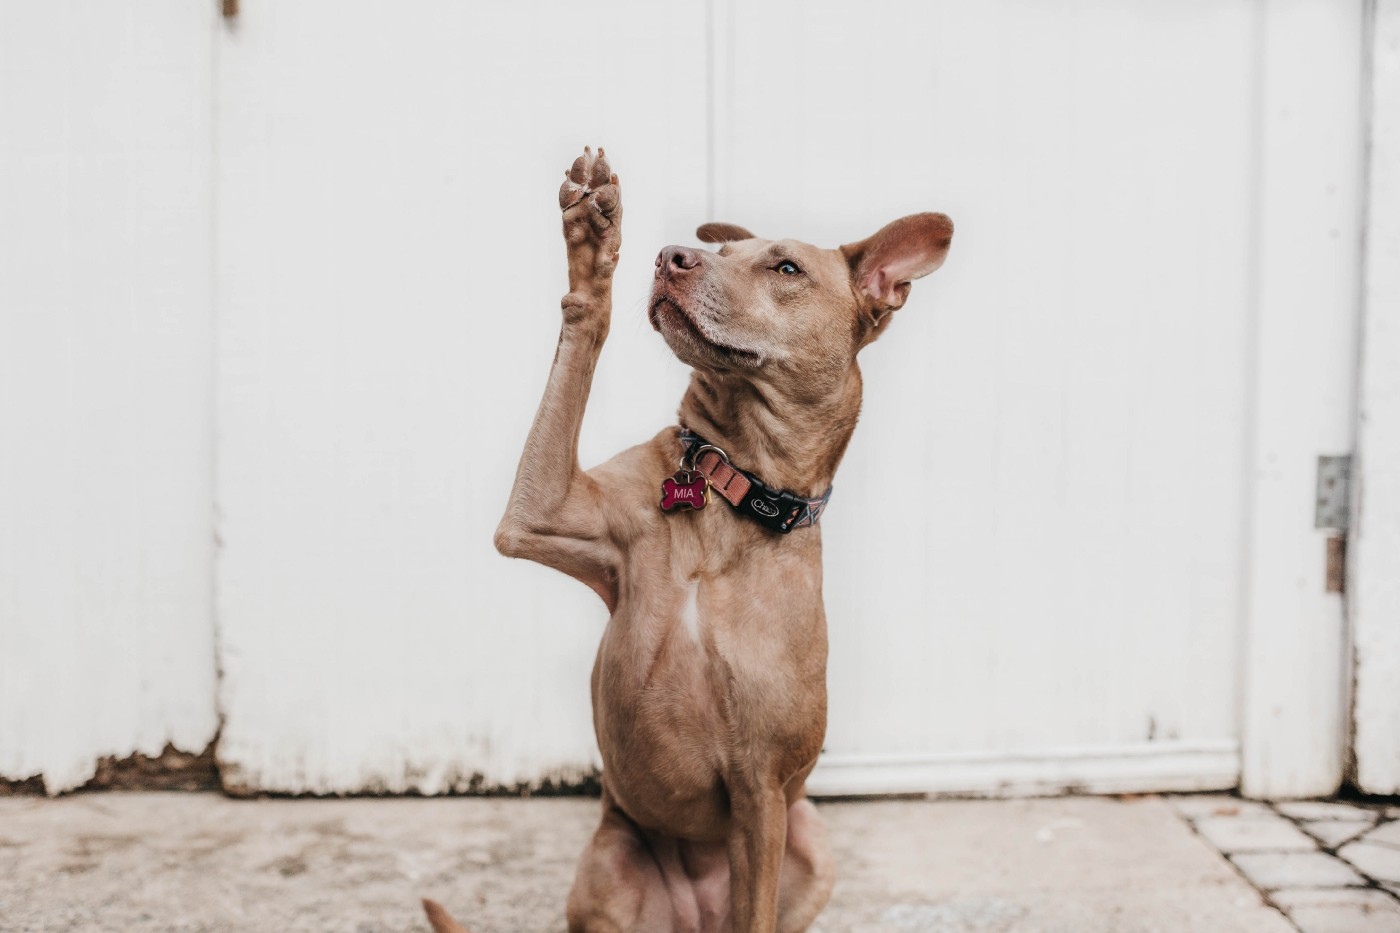 This is a photo of a dog raising a paw to ask a question.